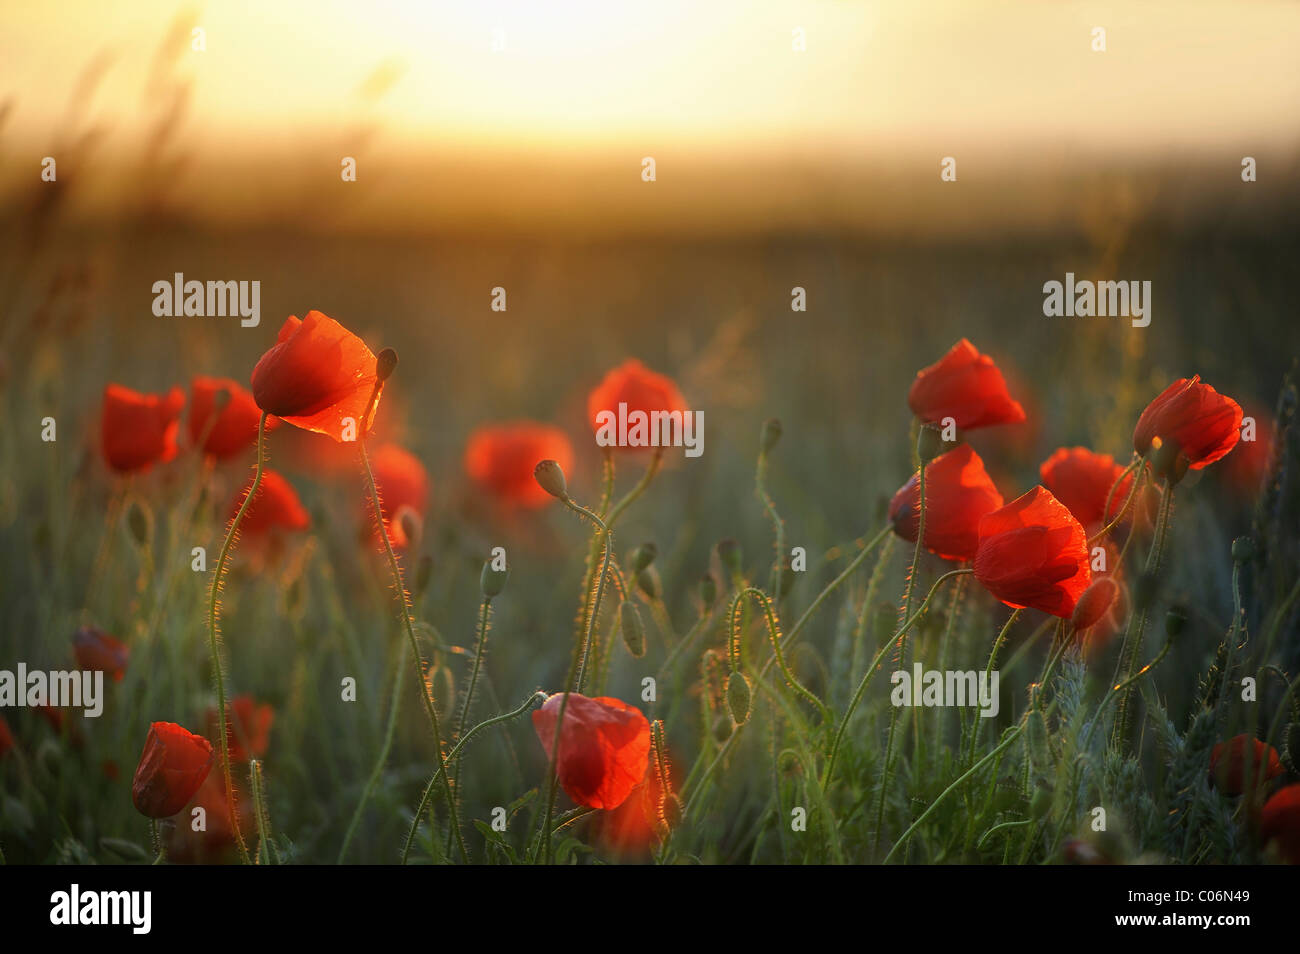 Corn Poppies (Papaver rhoeas) in the evening light, Germany, Europe - Stock Image